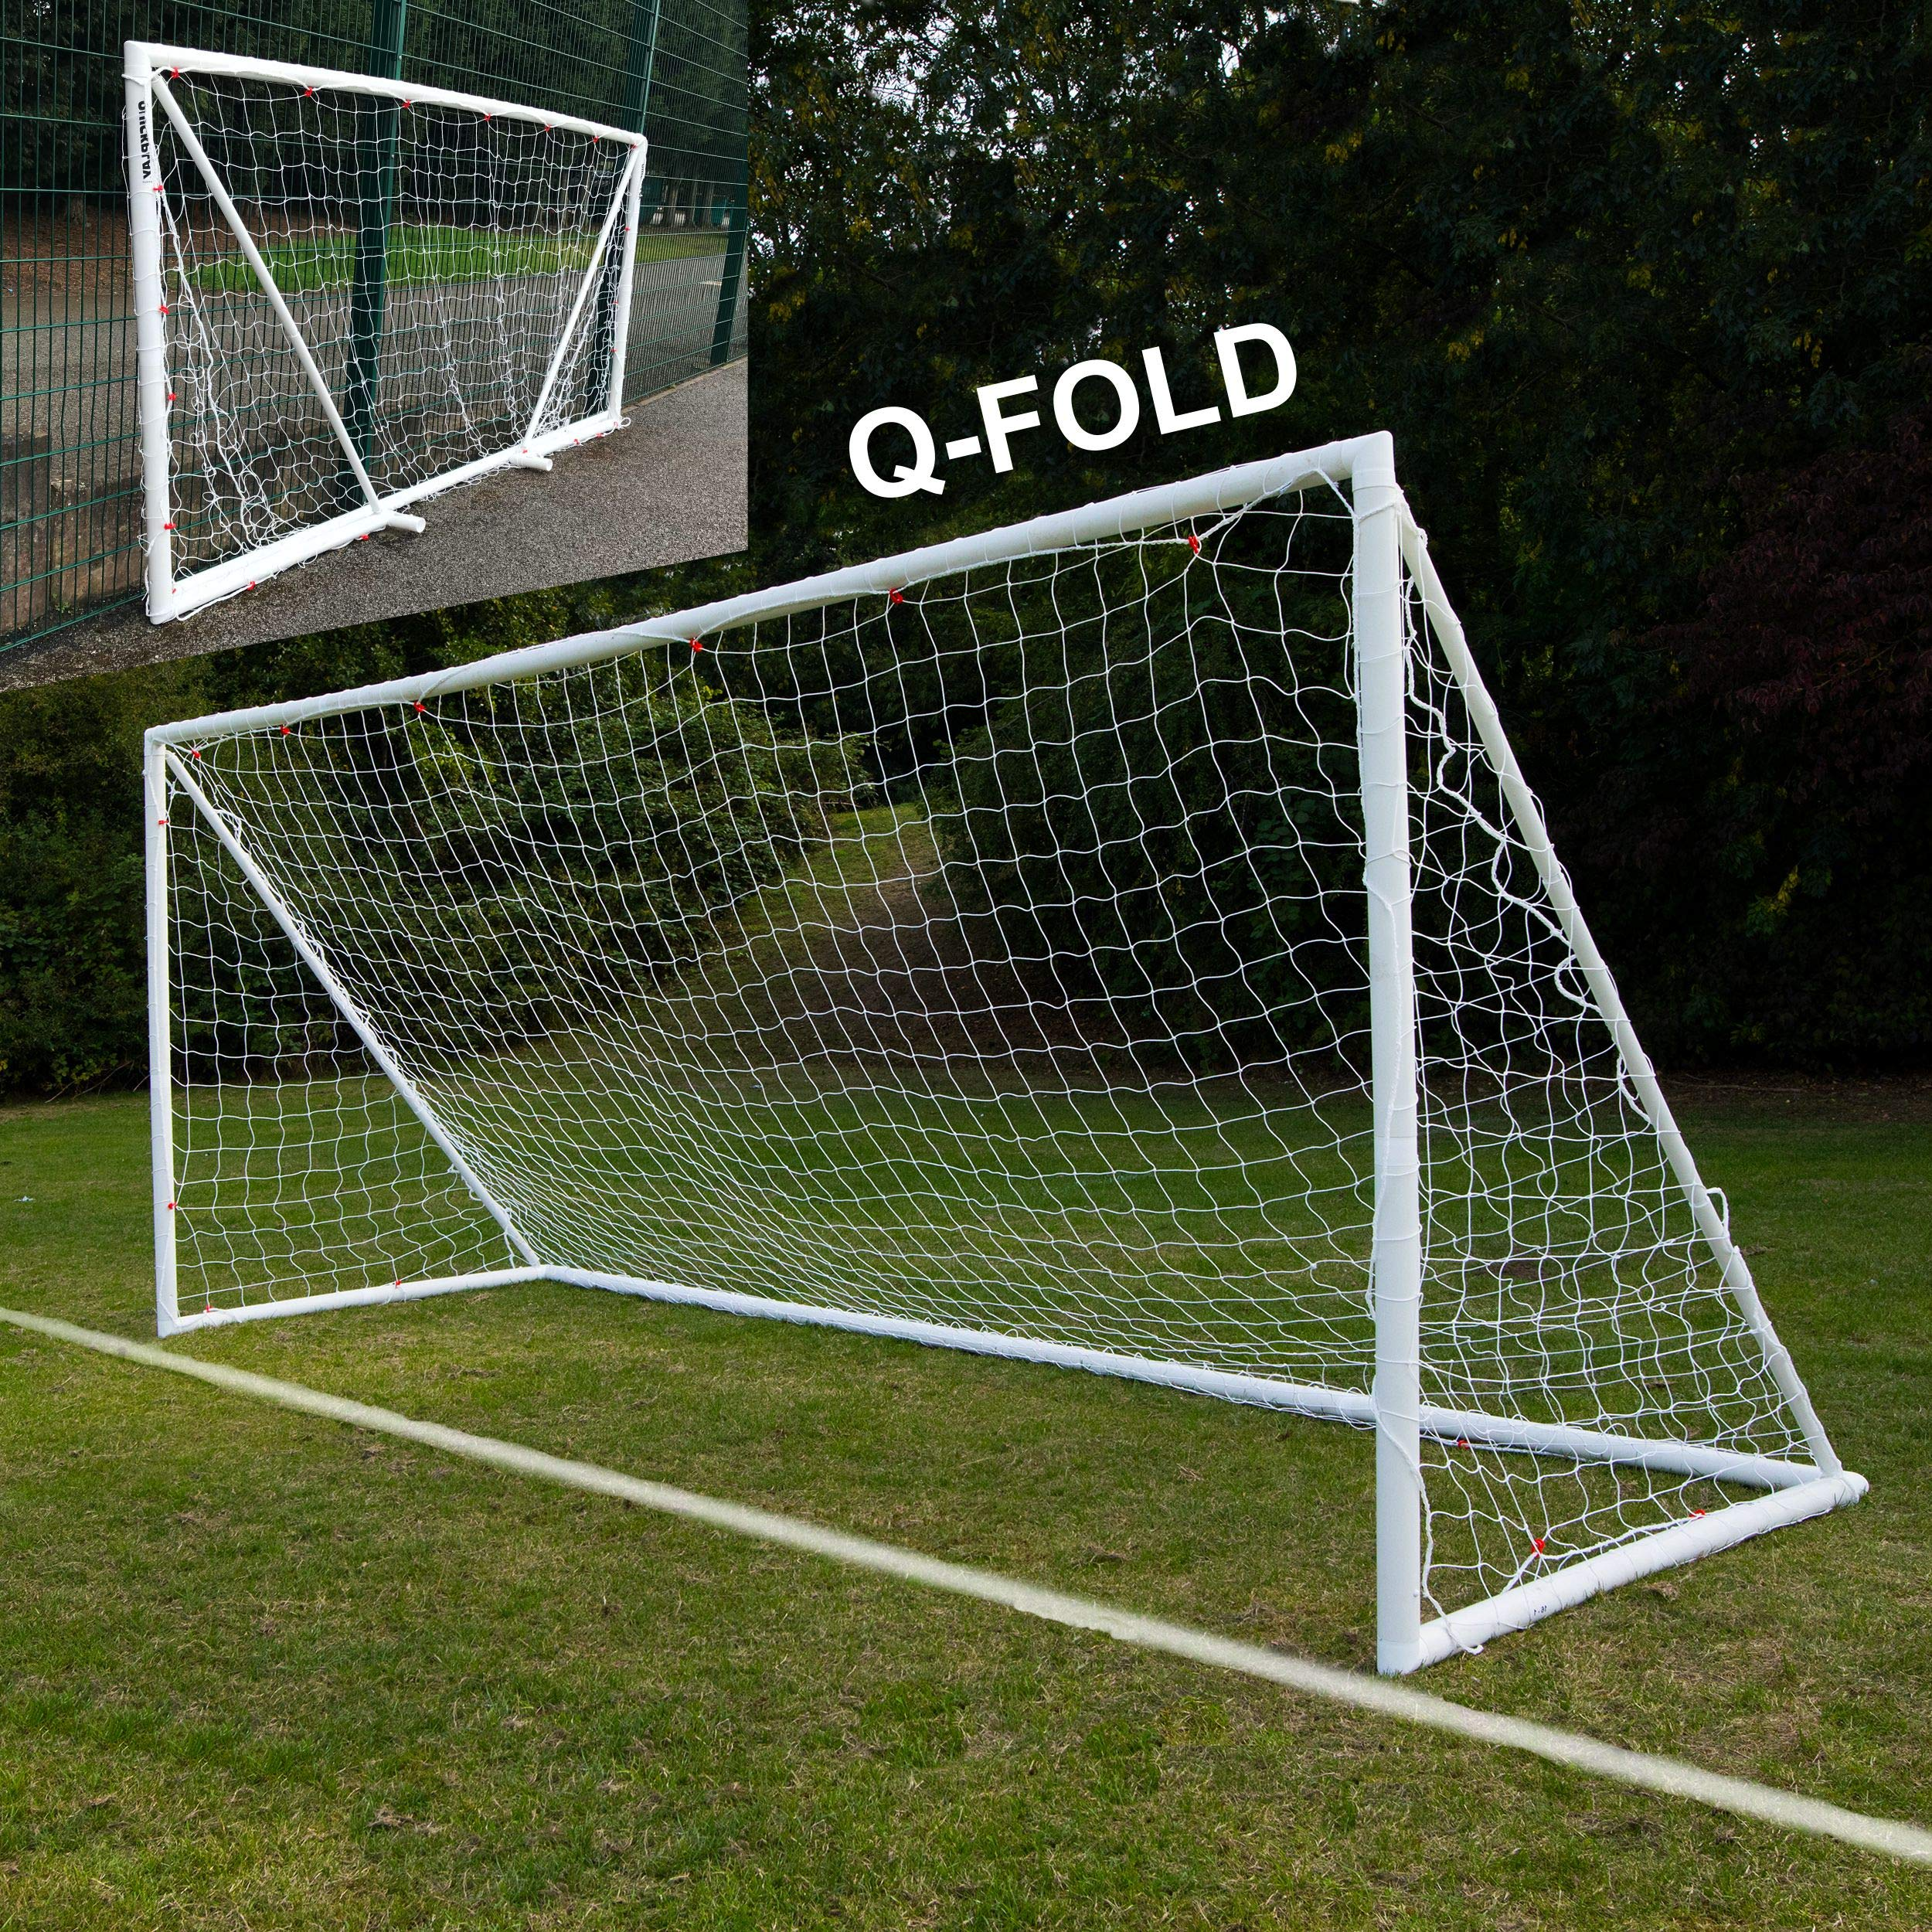 QuickPlay Q-Fold | The 30 Second Folding Soccer Goal for Backyard [Single Goal] (16x7')